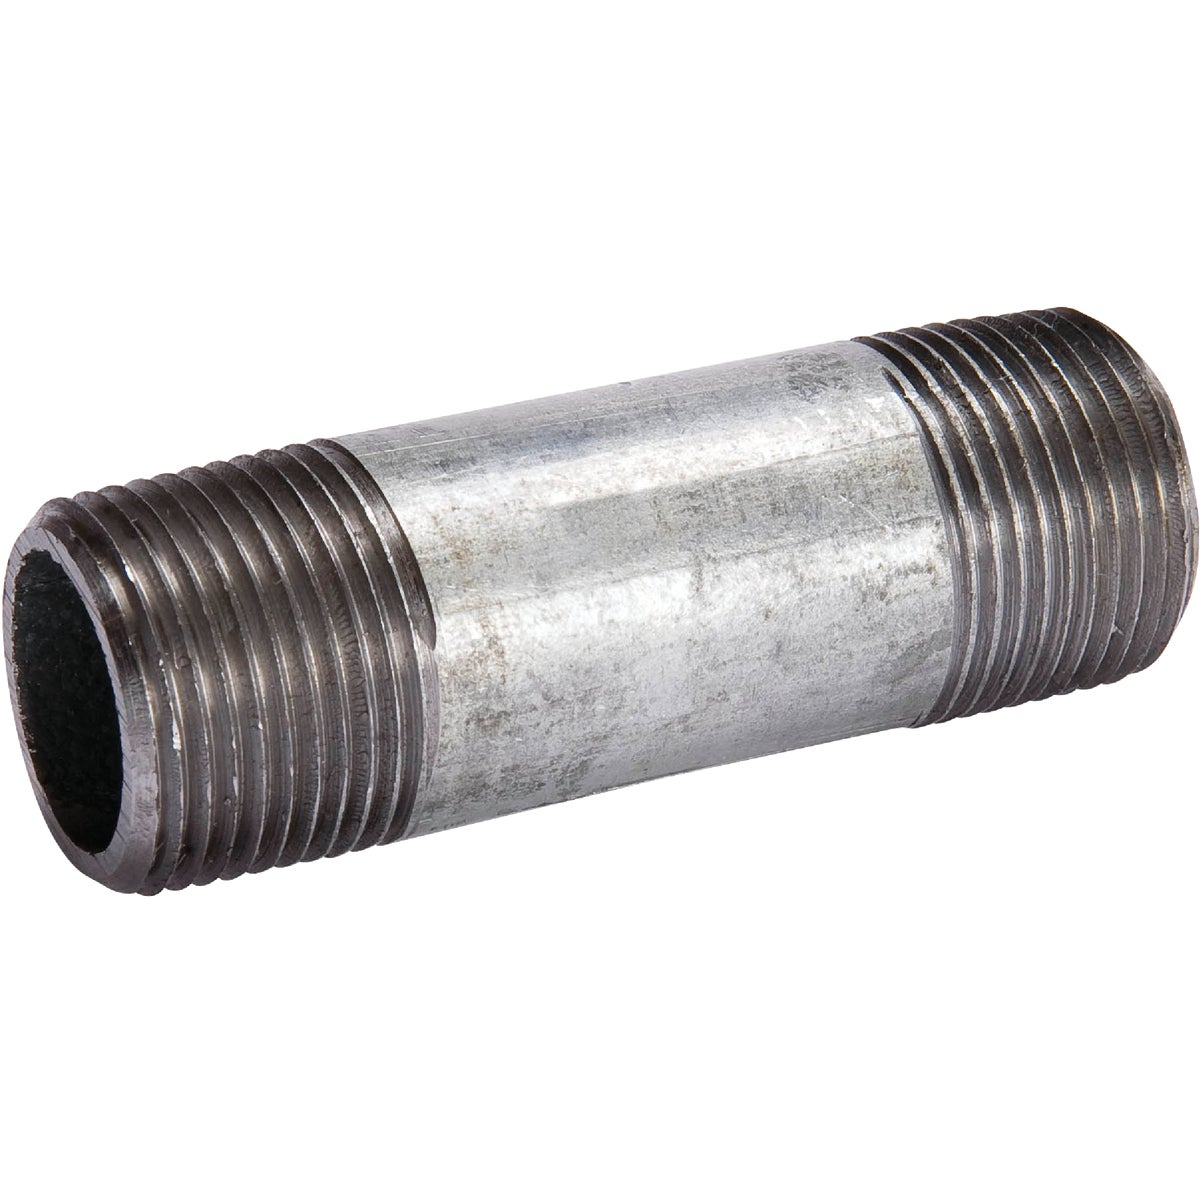 3/4X3-1/2 GALV NIPPLE - 10505 by Southland Pipe Nippl